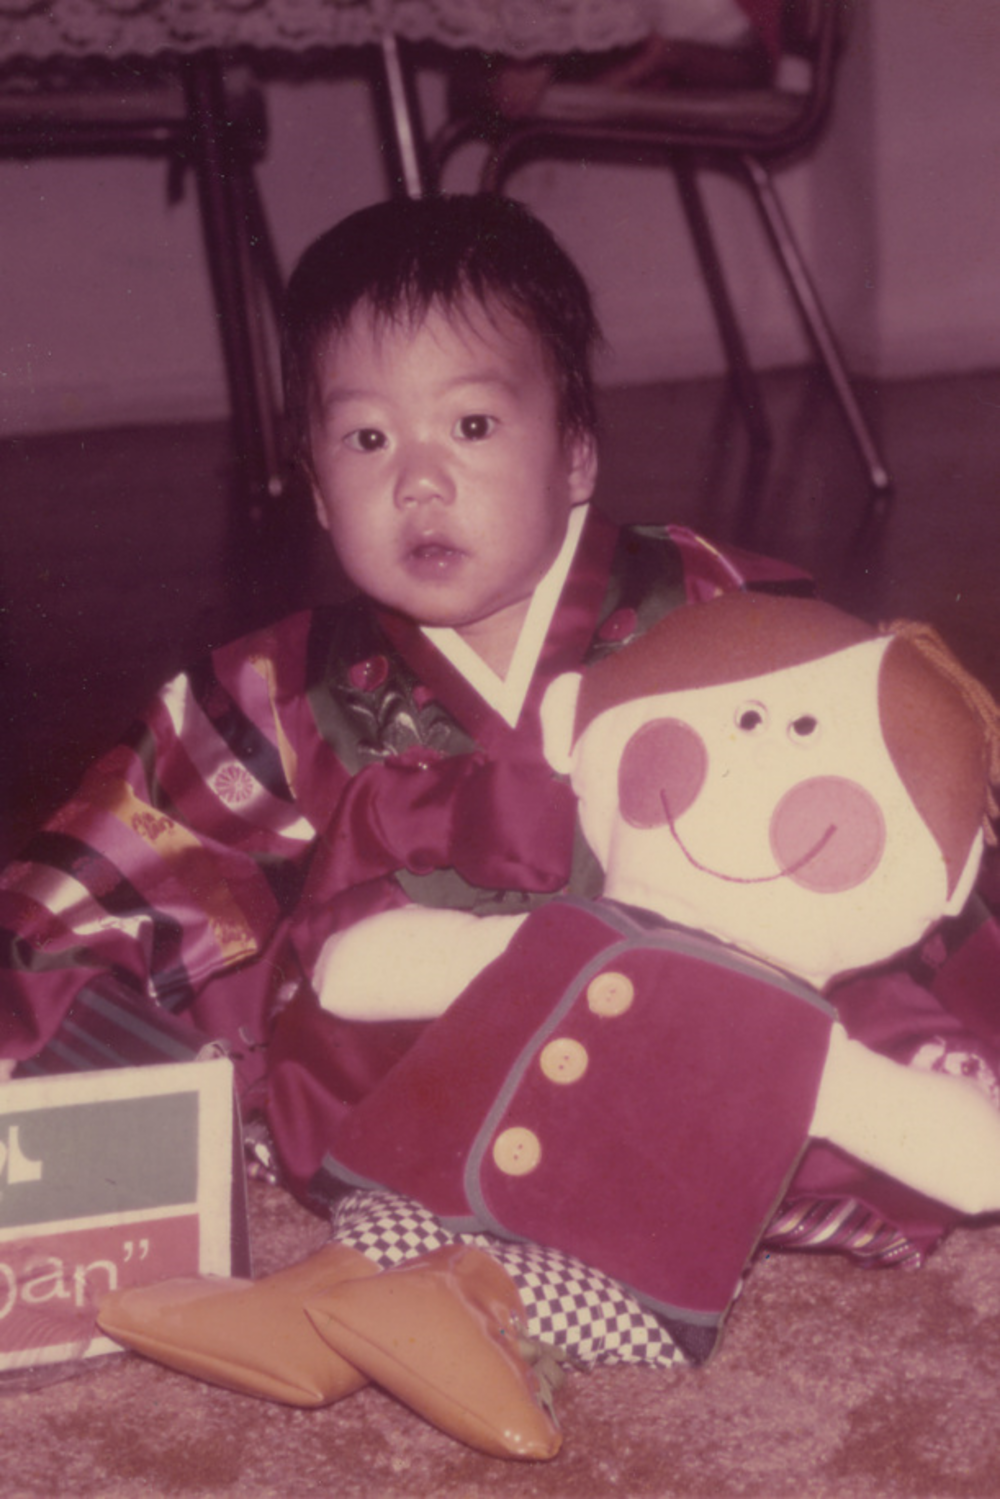 Me on my first birthday, or Dol (in Korean). I am wearing my birthday hanbok (traditional dress). This pic was taken moments before my 3-yr old brother took my Dapper Dan away from me.